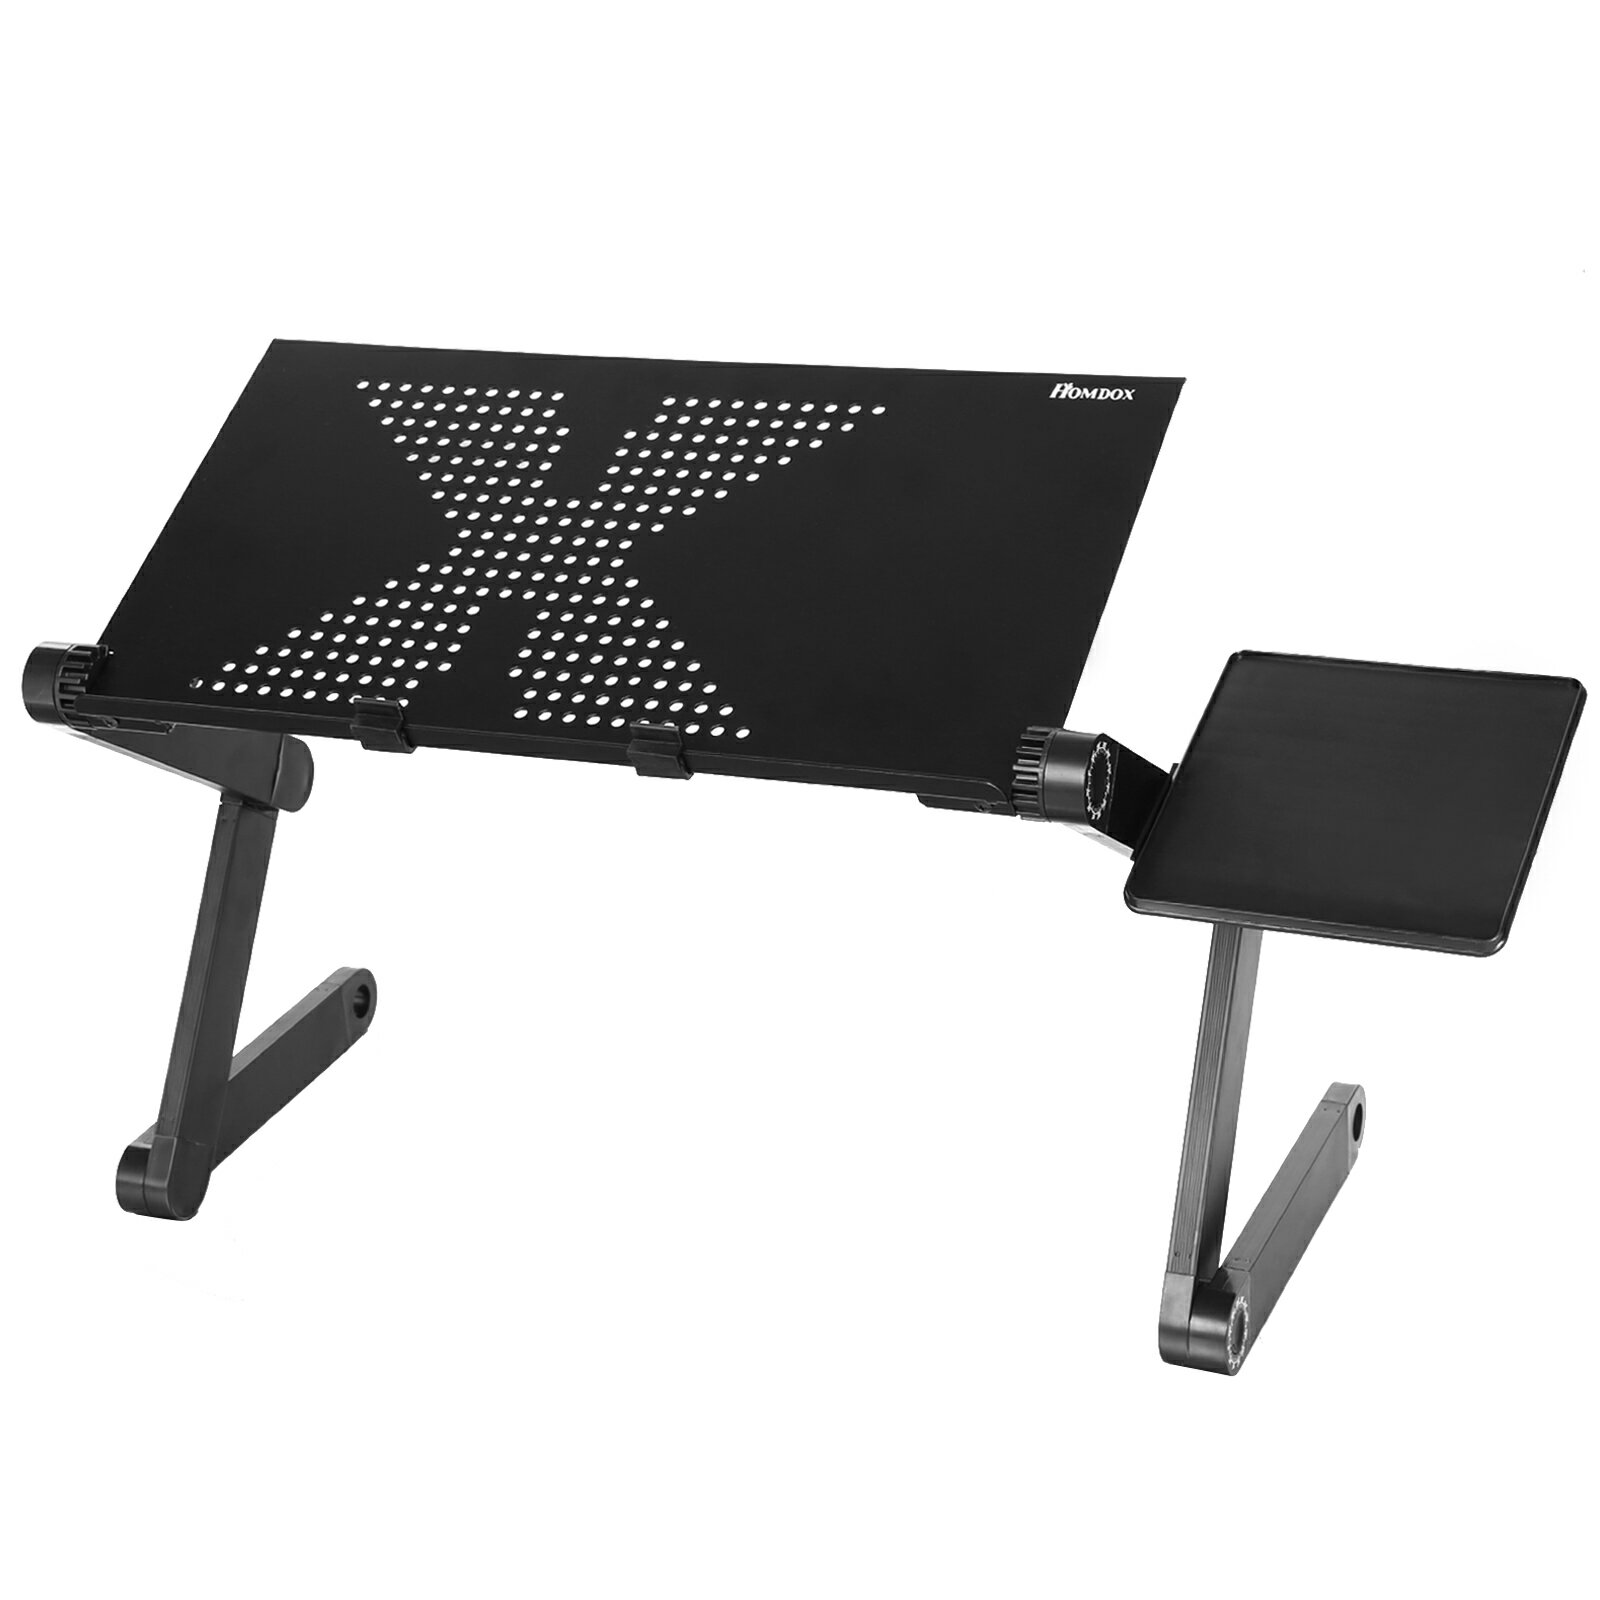 360 Degree Adjustable Foldable Laptop Notebook Desk Table 0